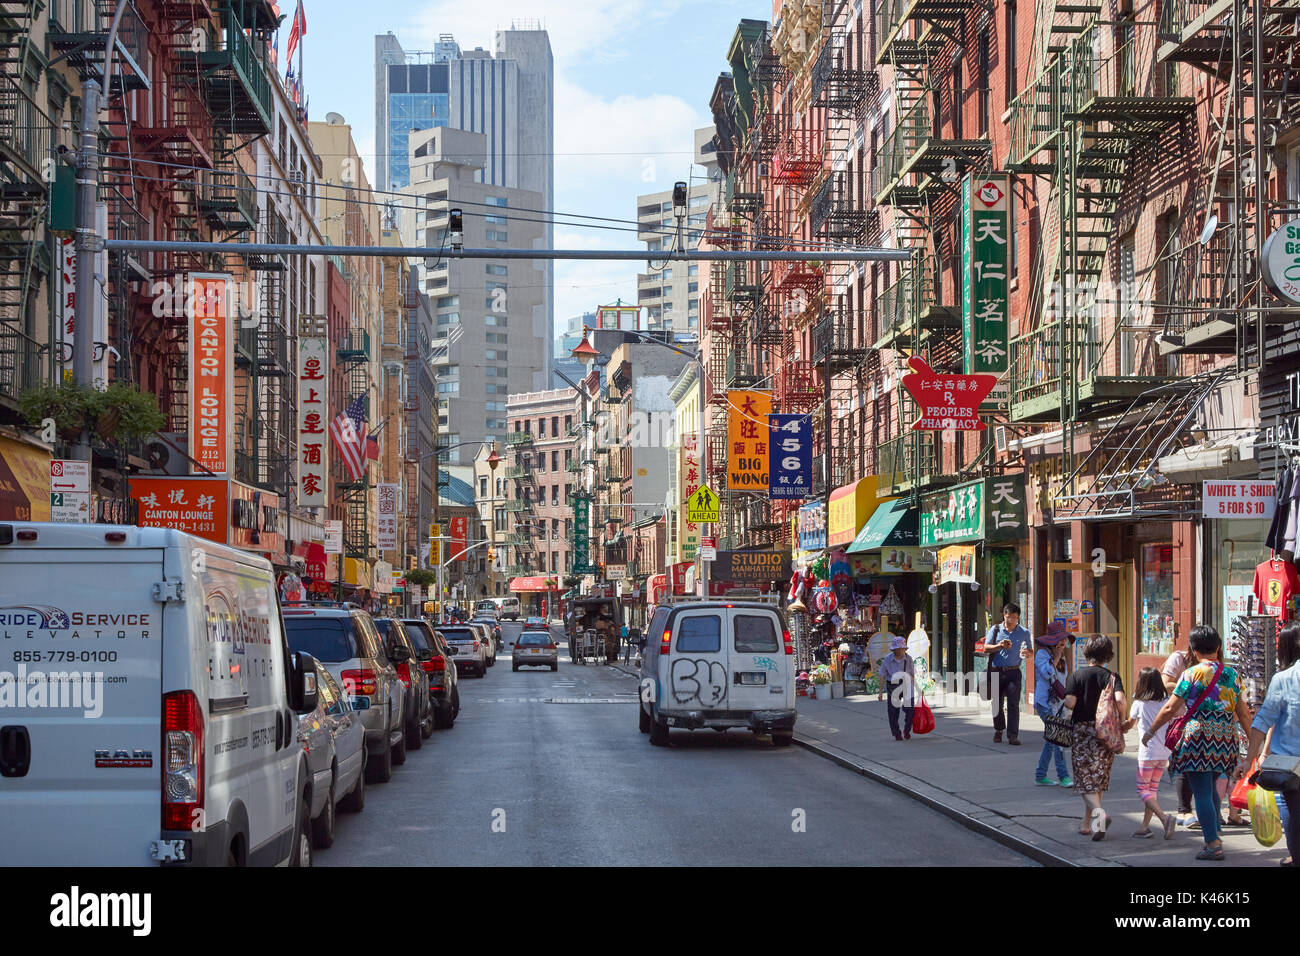 chinatown stra e mit menschen und geb ude an einem sonnigen tag in new york stockfoto bild. Black Bedroom Furniture Sets. Home Design Ideas